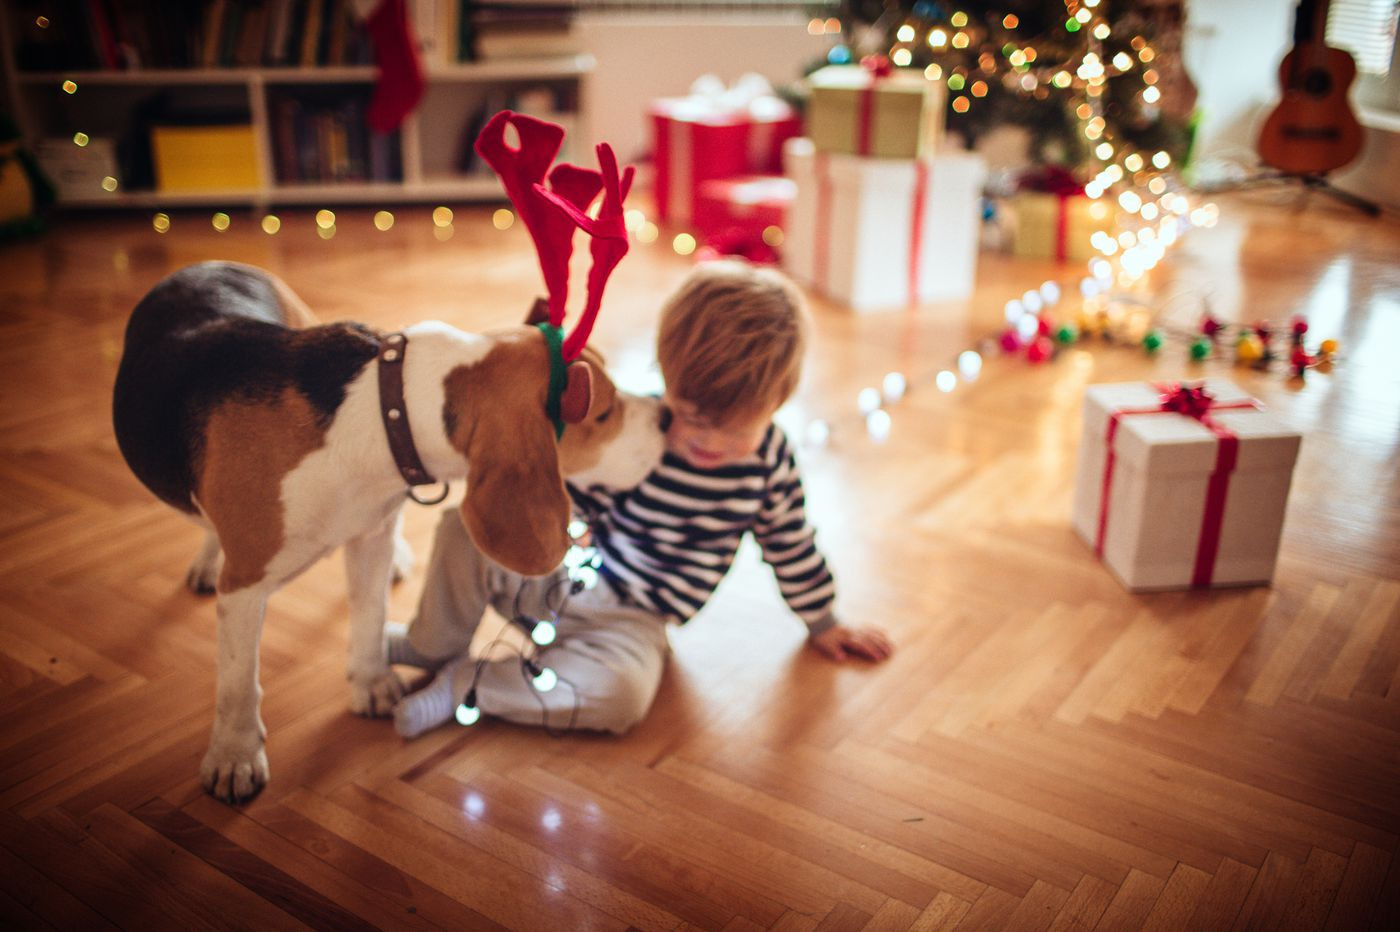 Getting the kids a puppy for Christmas? Early exposure to pet dogs may lessen risk of schizophrenia, study finds